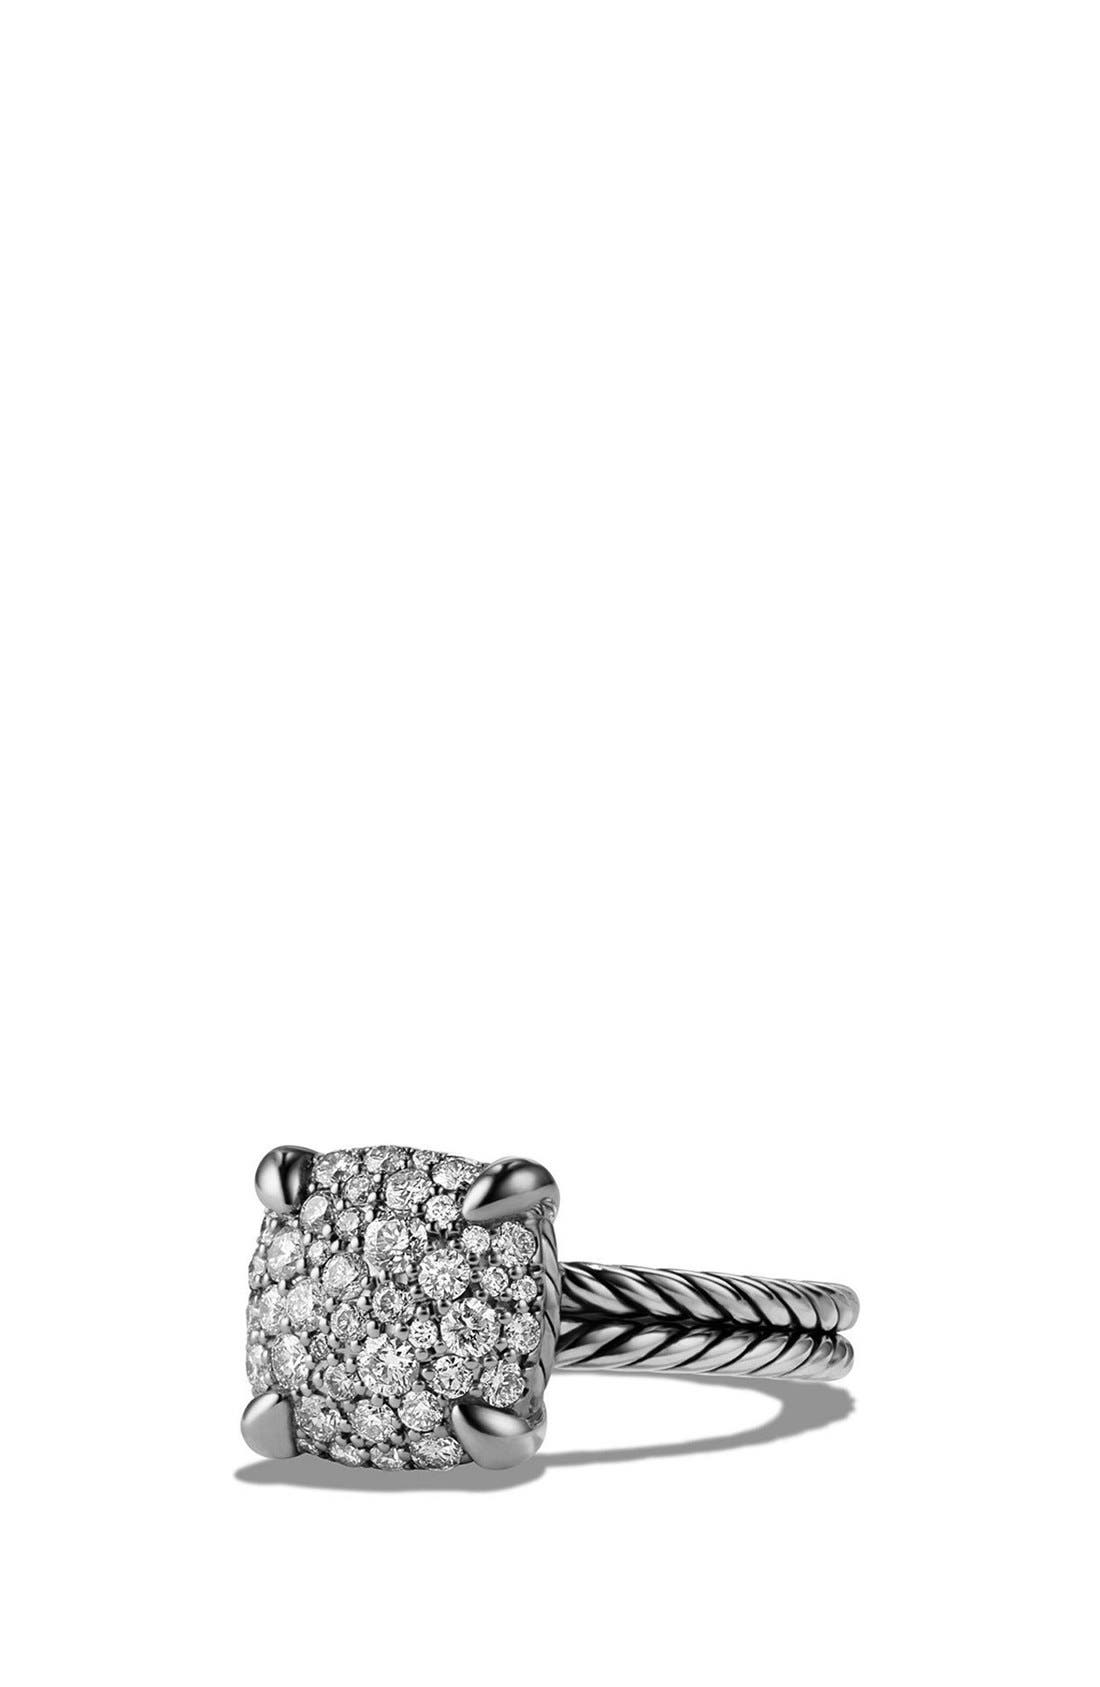 Main Image - David Yurman 'Châtelaine' Ring with Diamonds